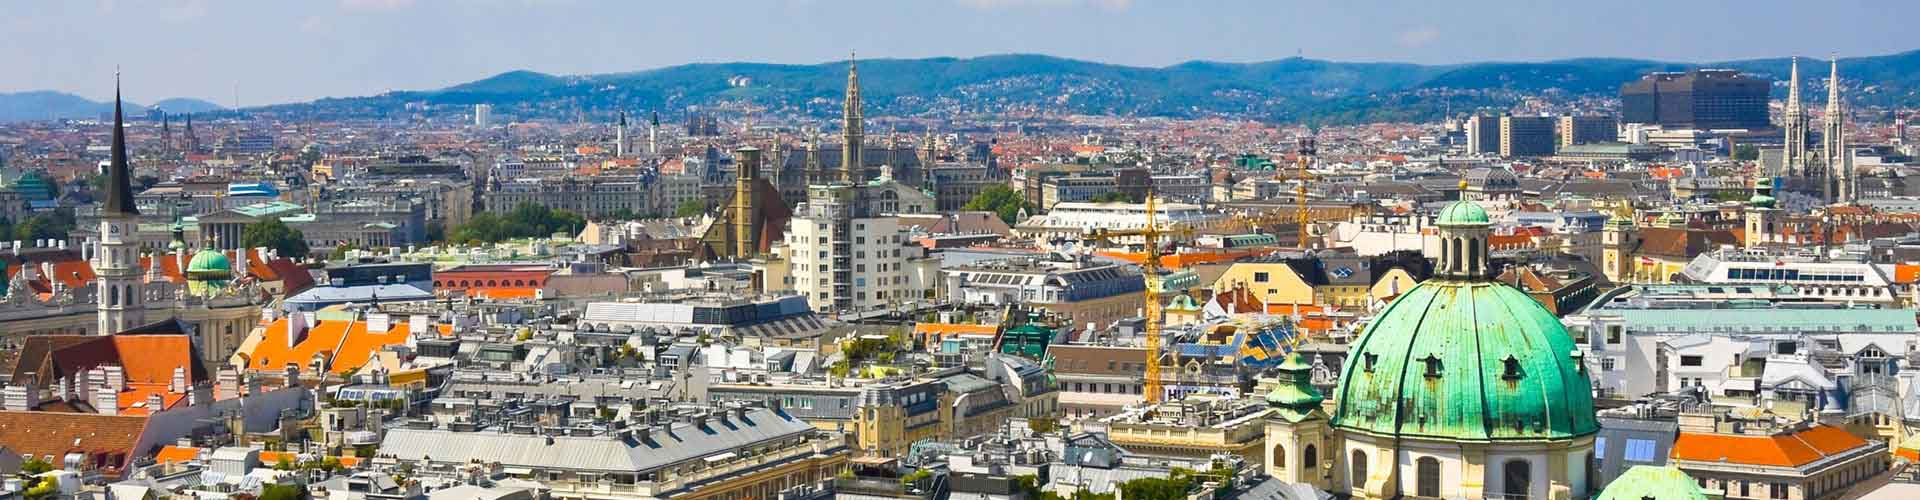 Viena – Hotels for students in Viena. Maps of Austria, photos and reviews for each hotel for student in Viena.